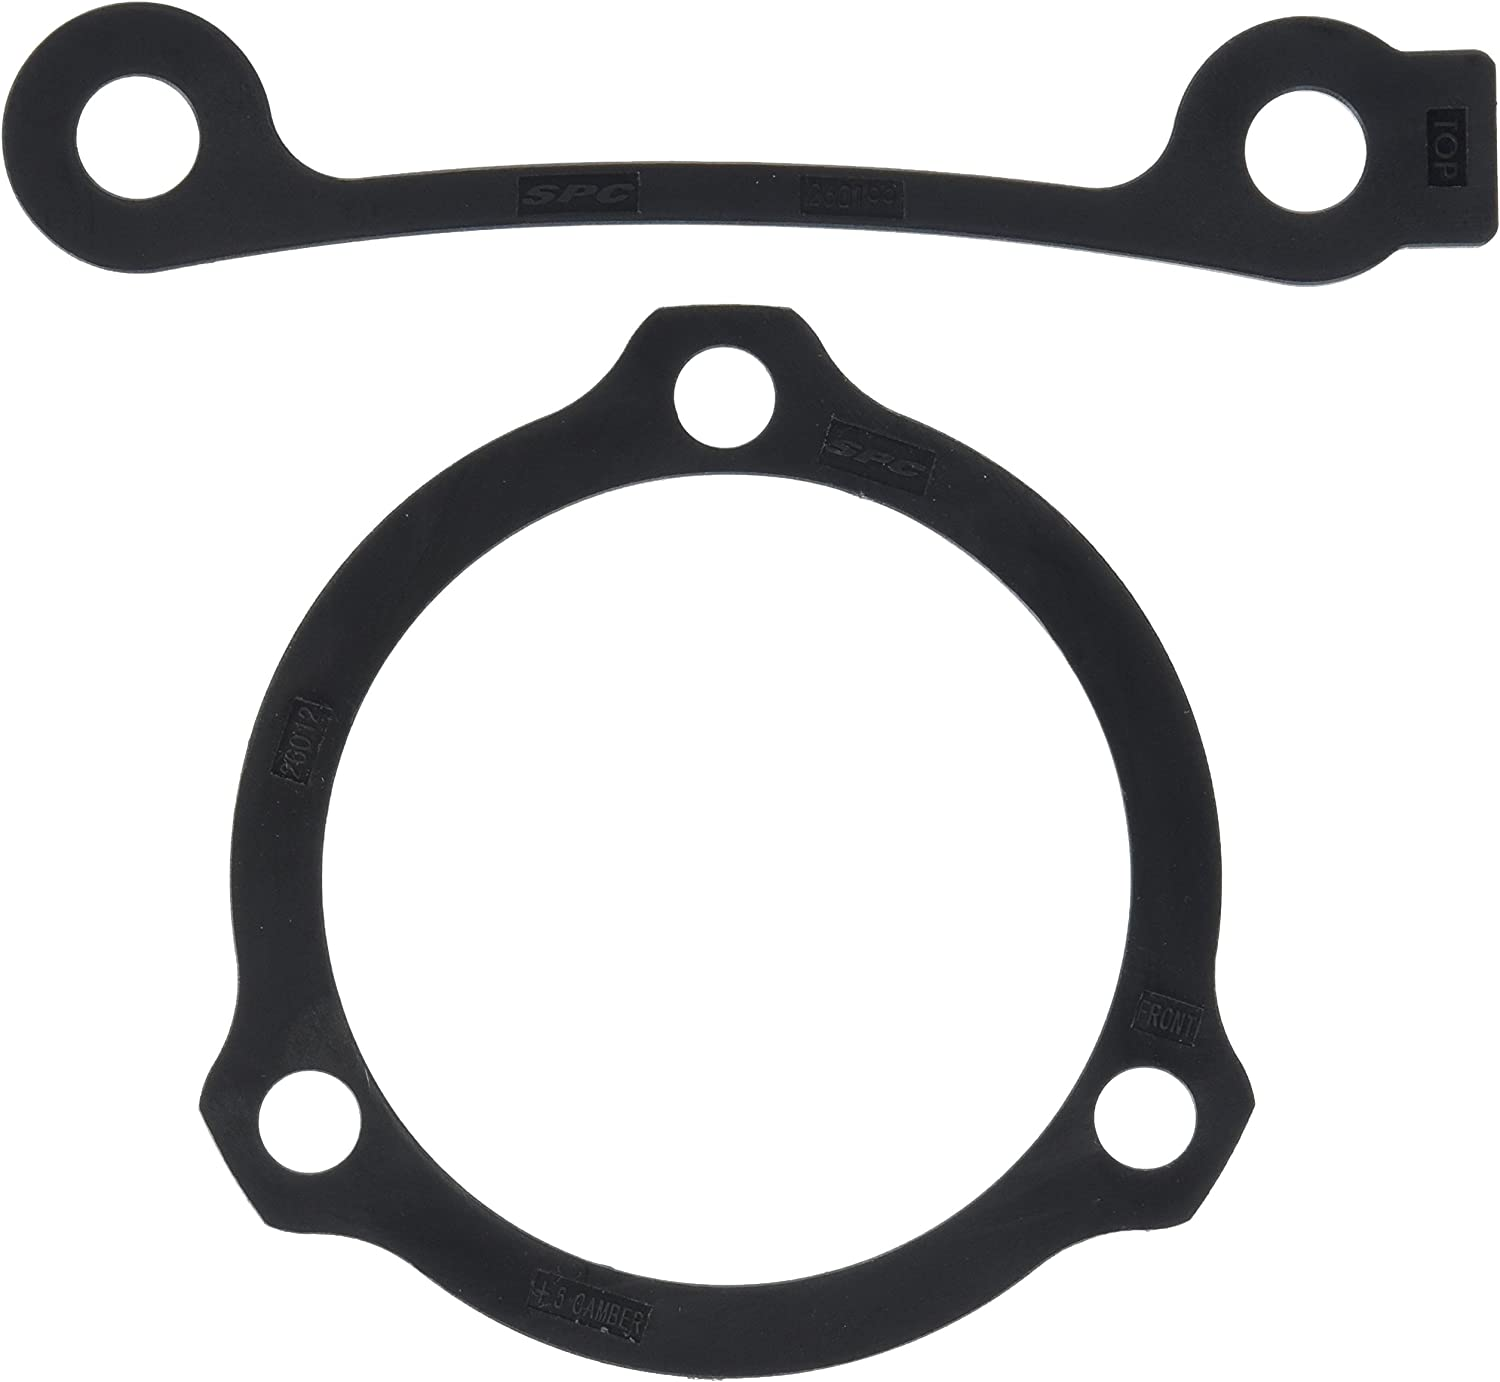 Jeep + 1.0 Degree Specialty Products 26014 Camber Shim